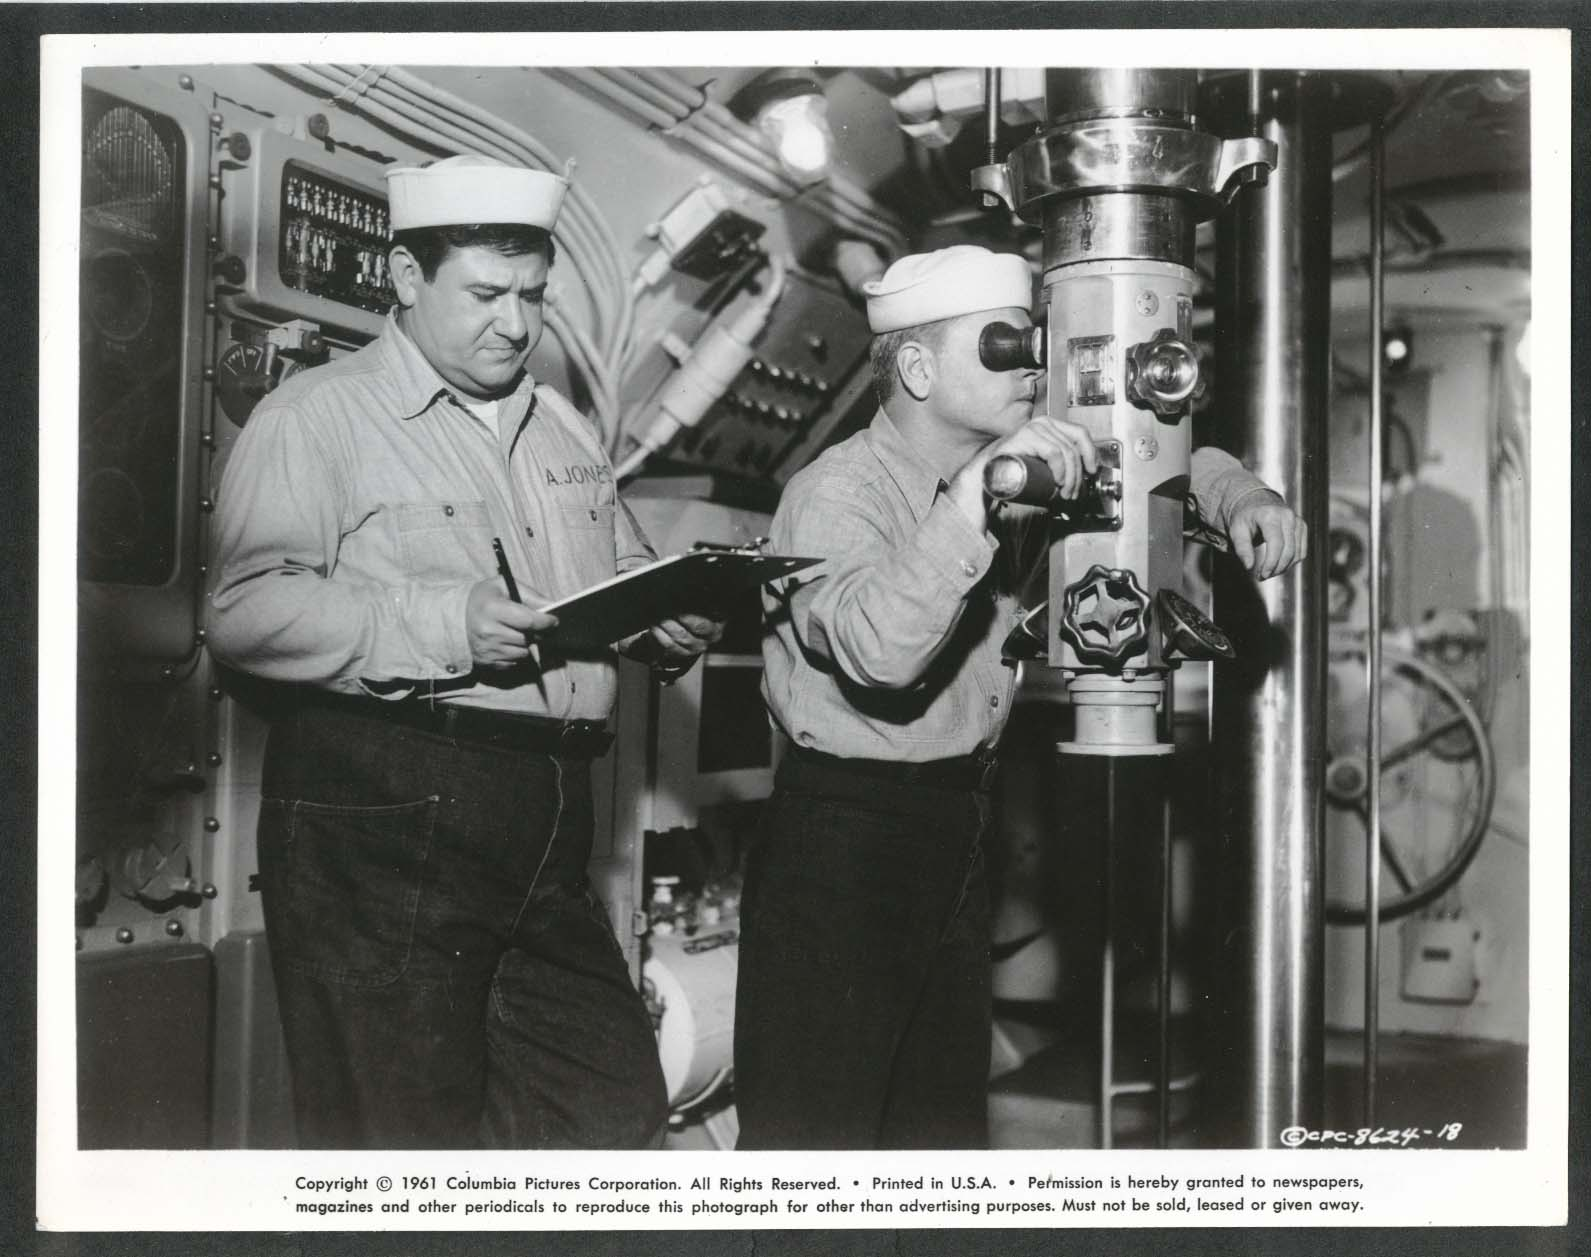 Image for Buddy Hackett Everything's Ducky periscope 8x10 photograph 1961 #18